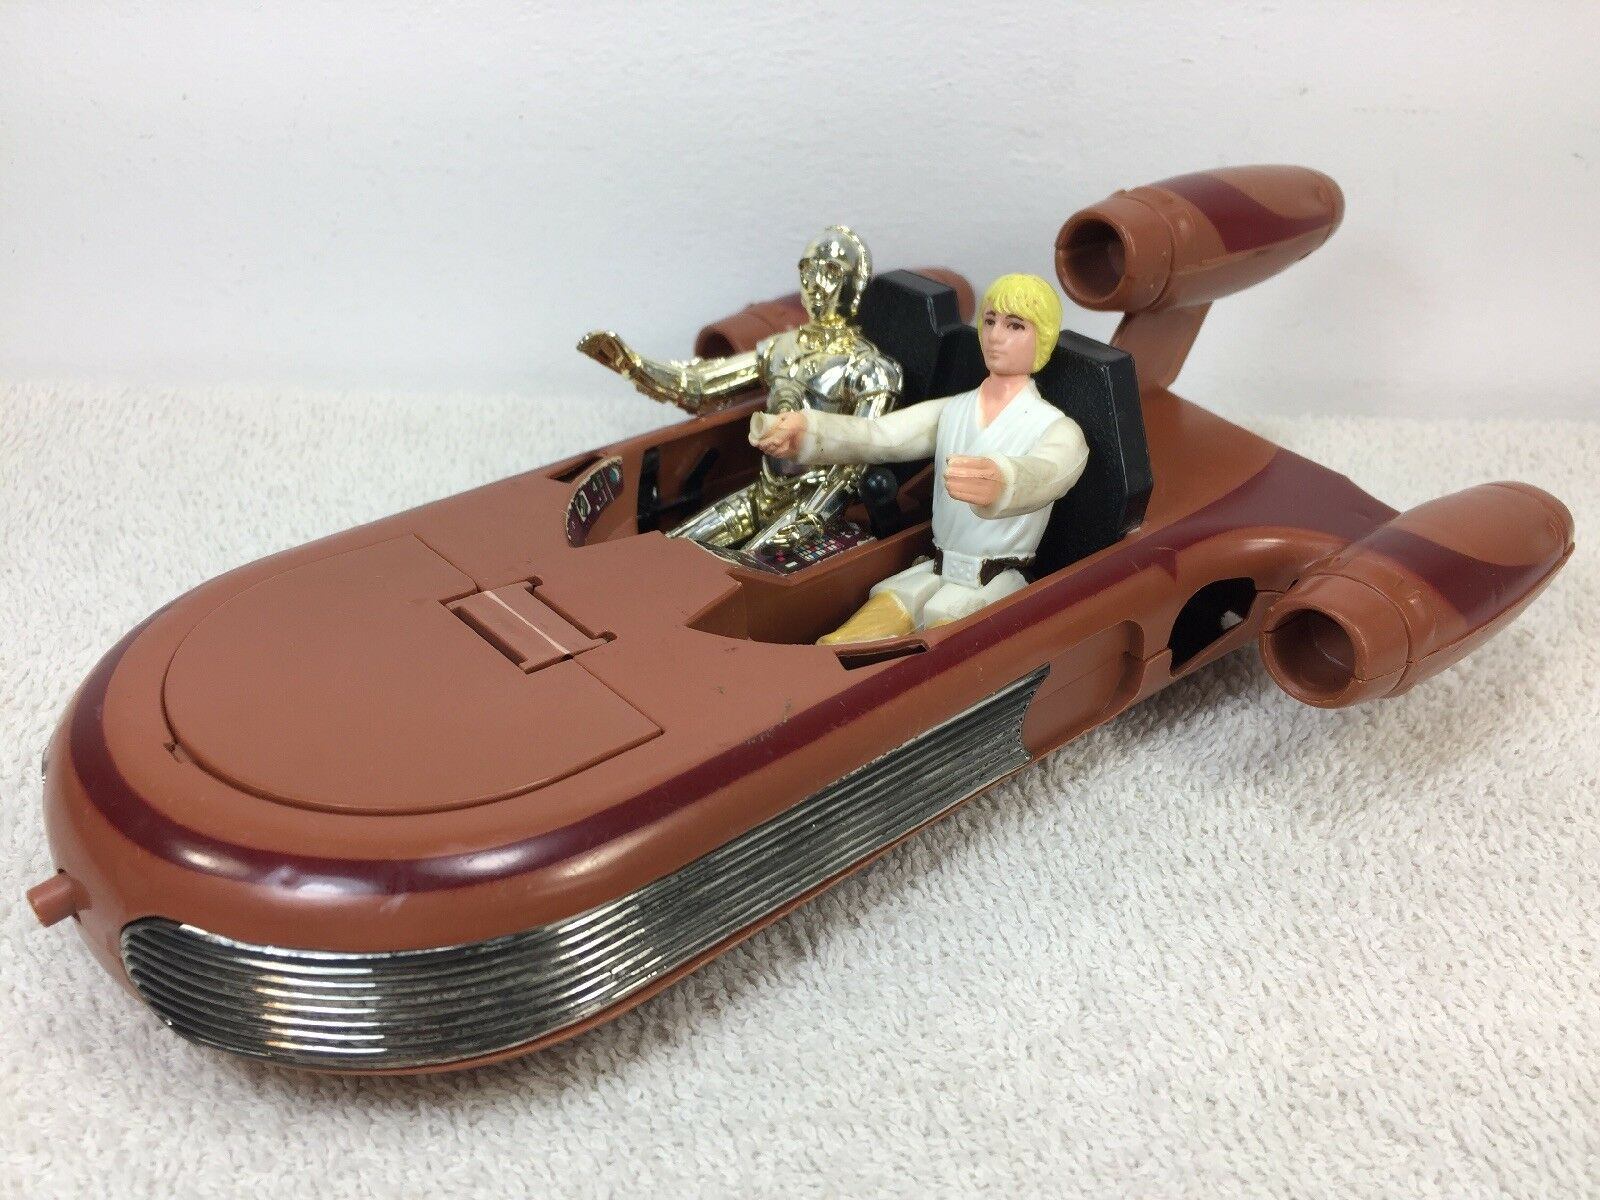 Vintage Star Wars ANH 1978 Landspeeder w Luke & C-3PO Kenner Read Description